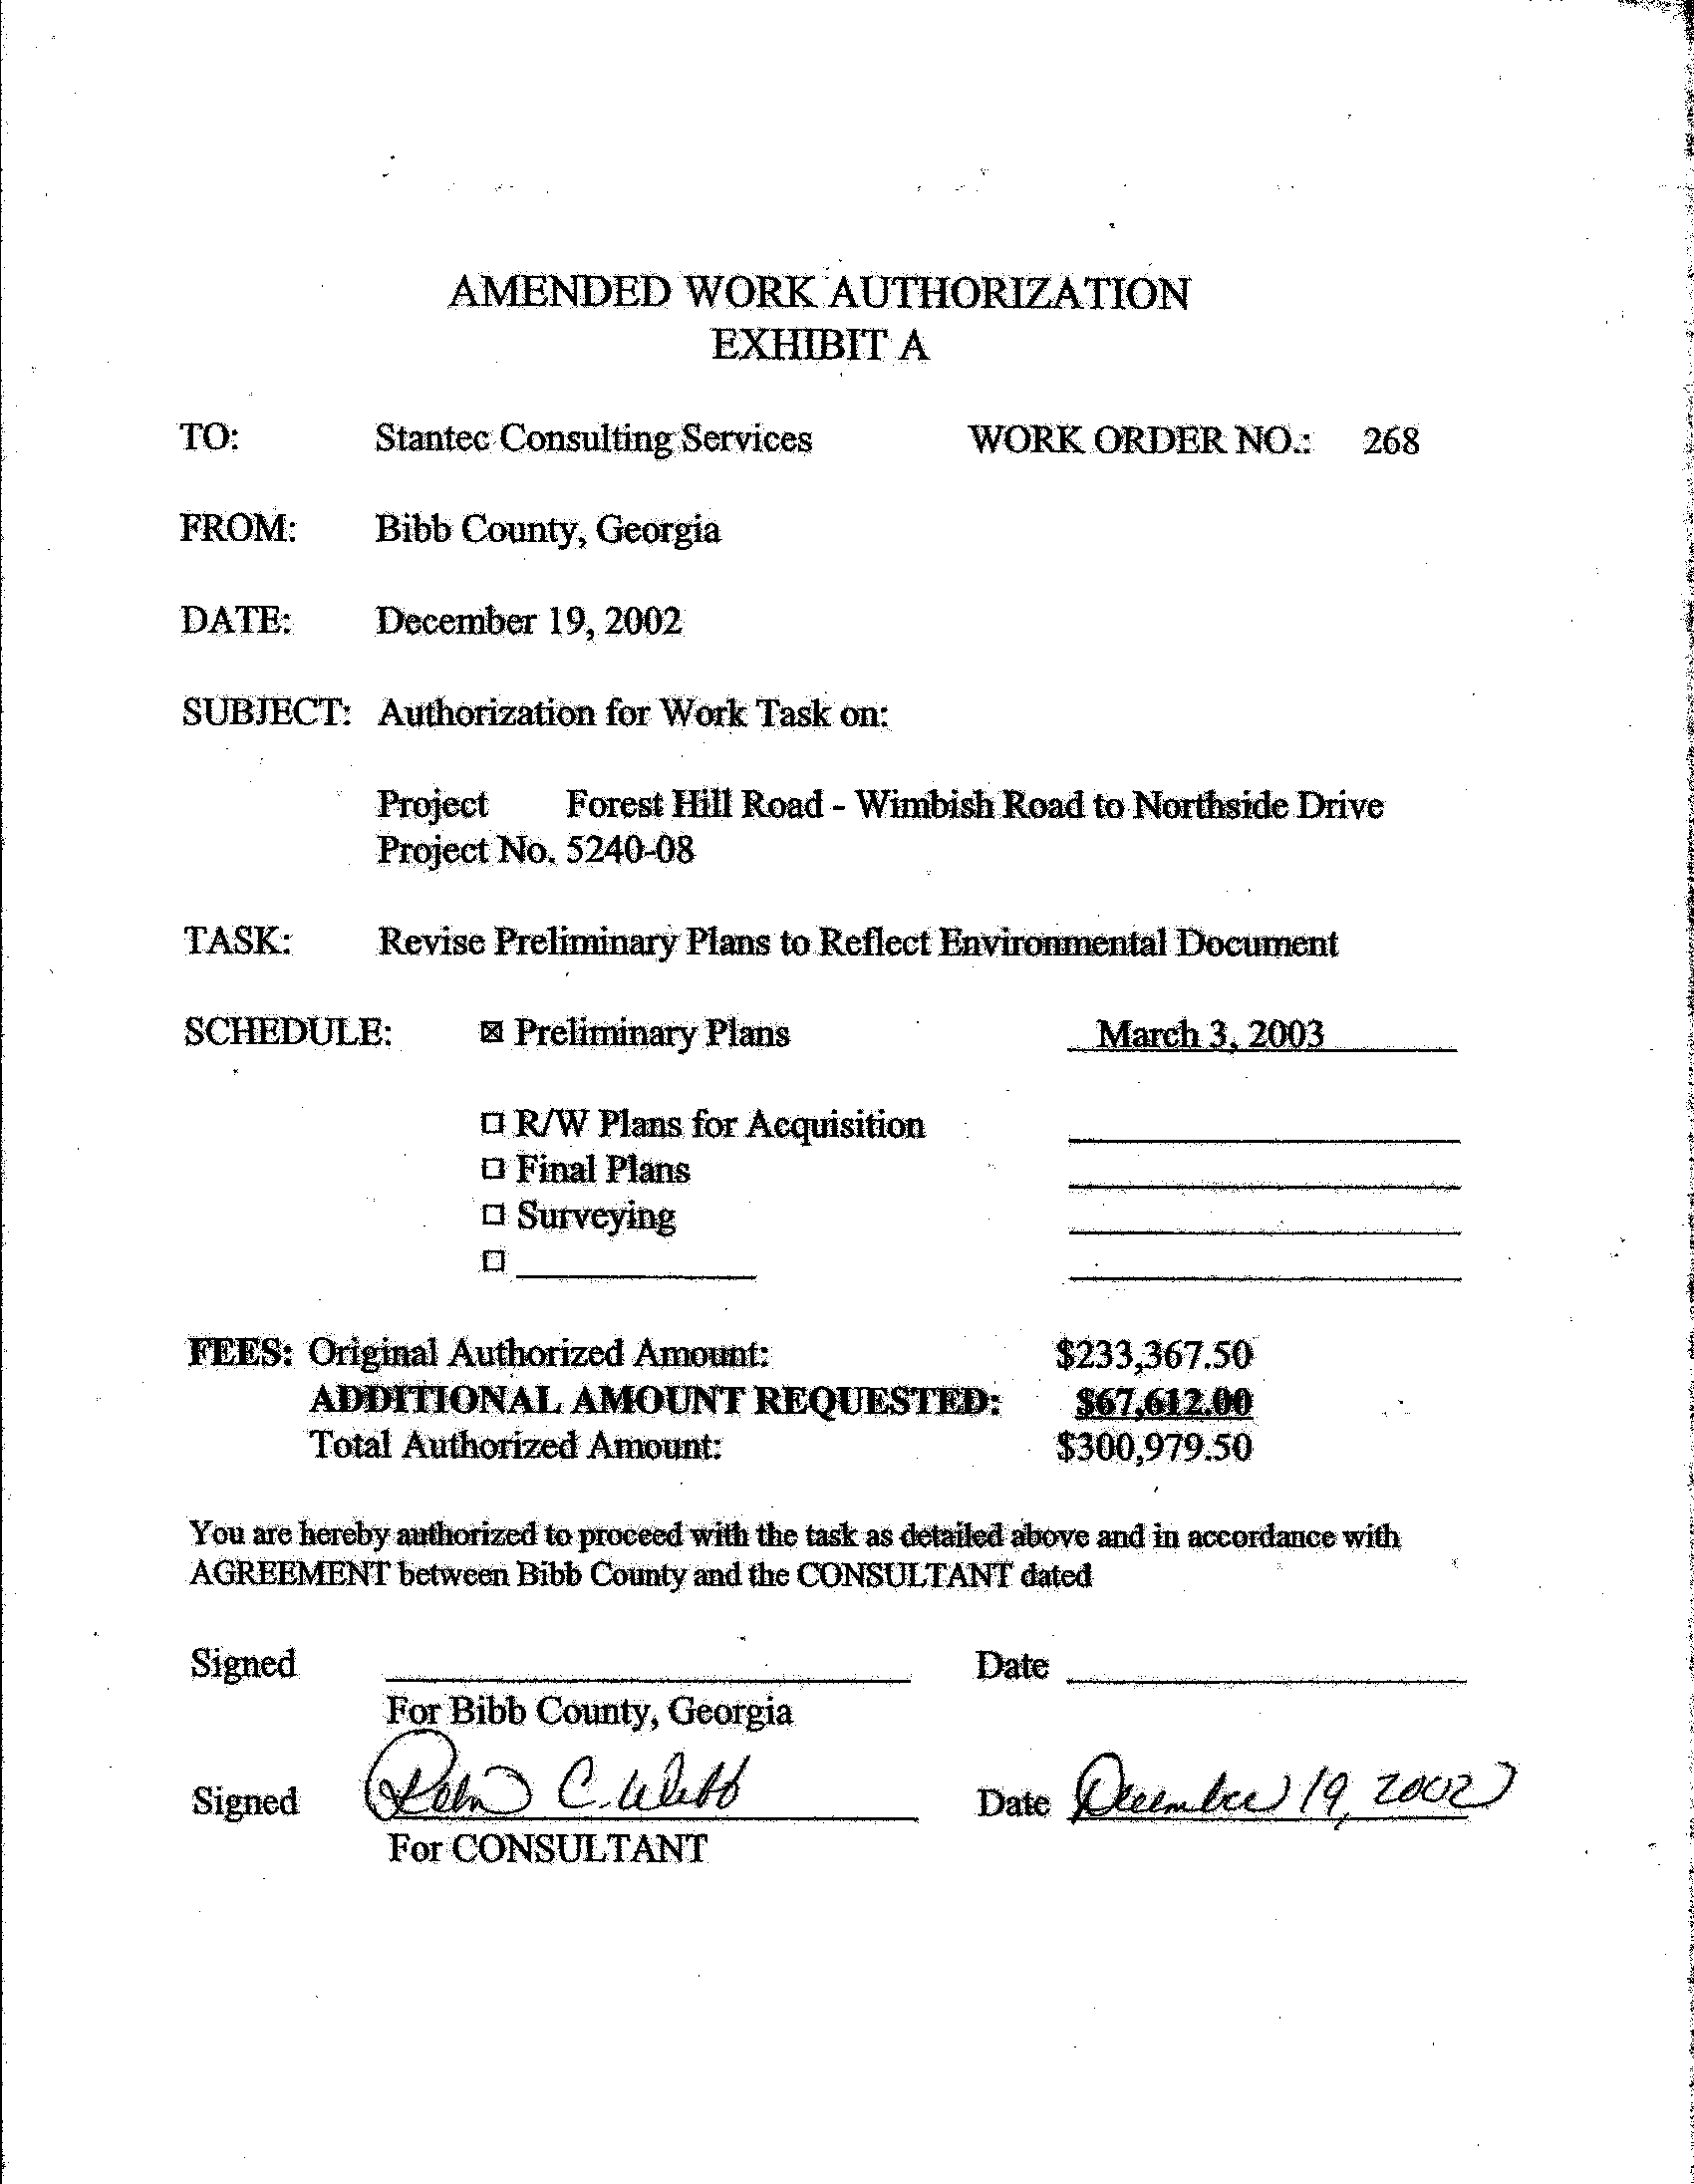 Elmo Richardson Letters Conflicts of Interest in Bibb County GA – Subcontractor Agreements